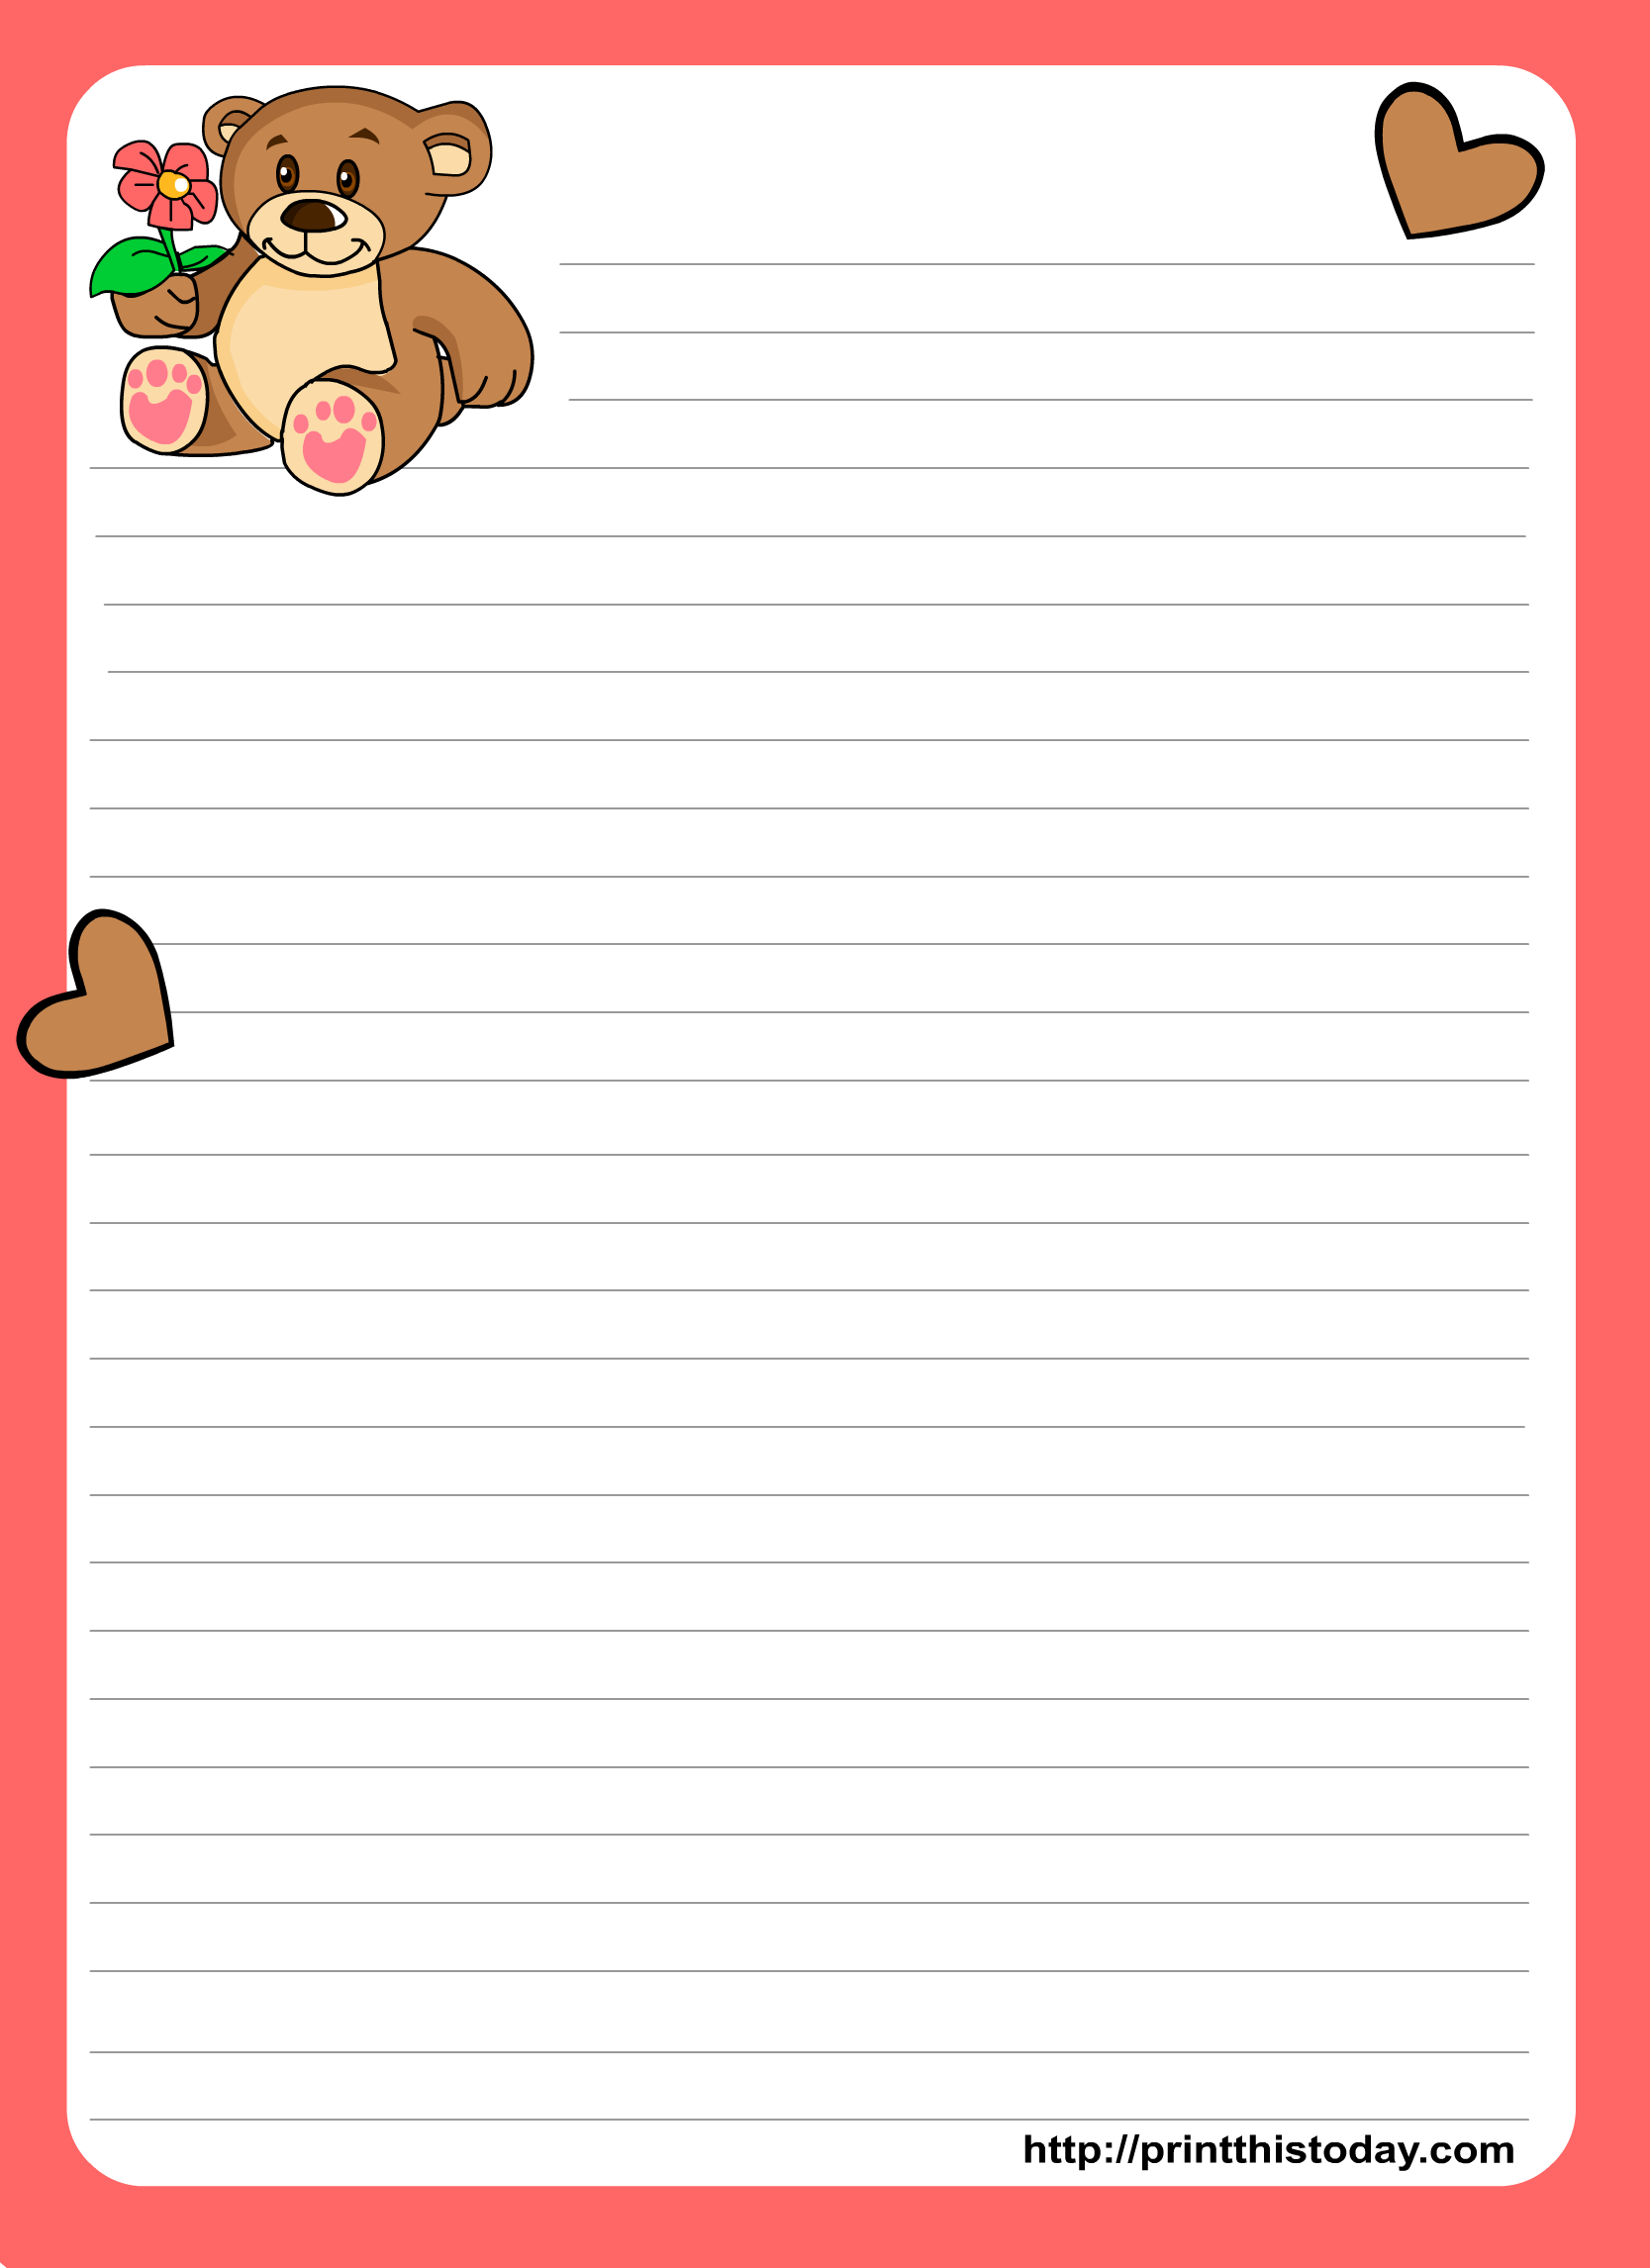 Nice Teddy Bear Writing Love Letter Paper Stationery For